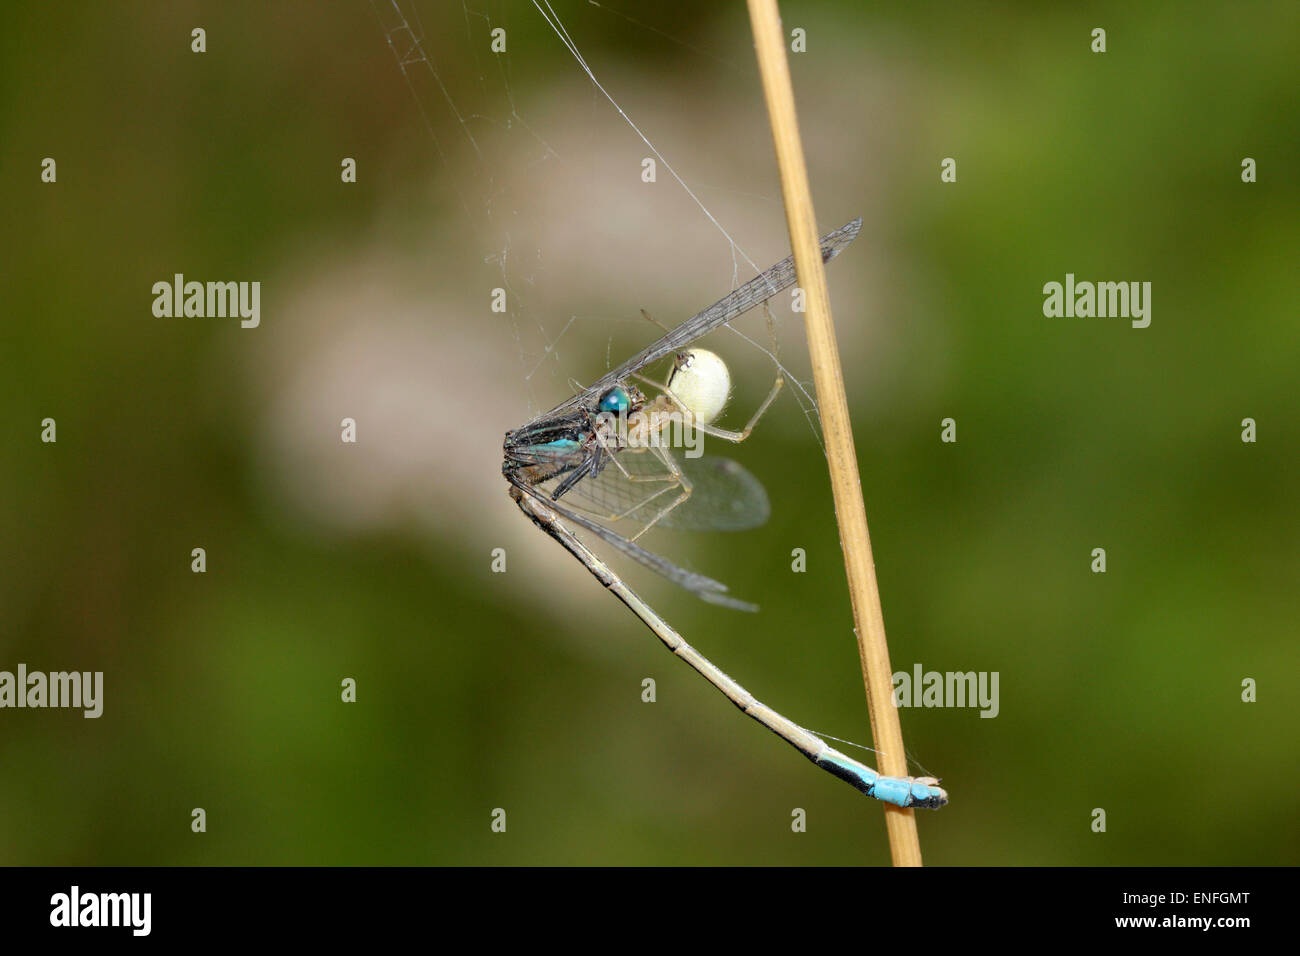 Comb-footed Spider - Enoplognatha ovata - with Damselfly prey. - Stock Image